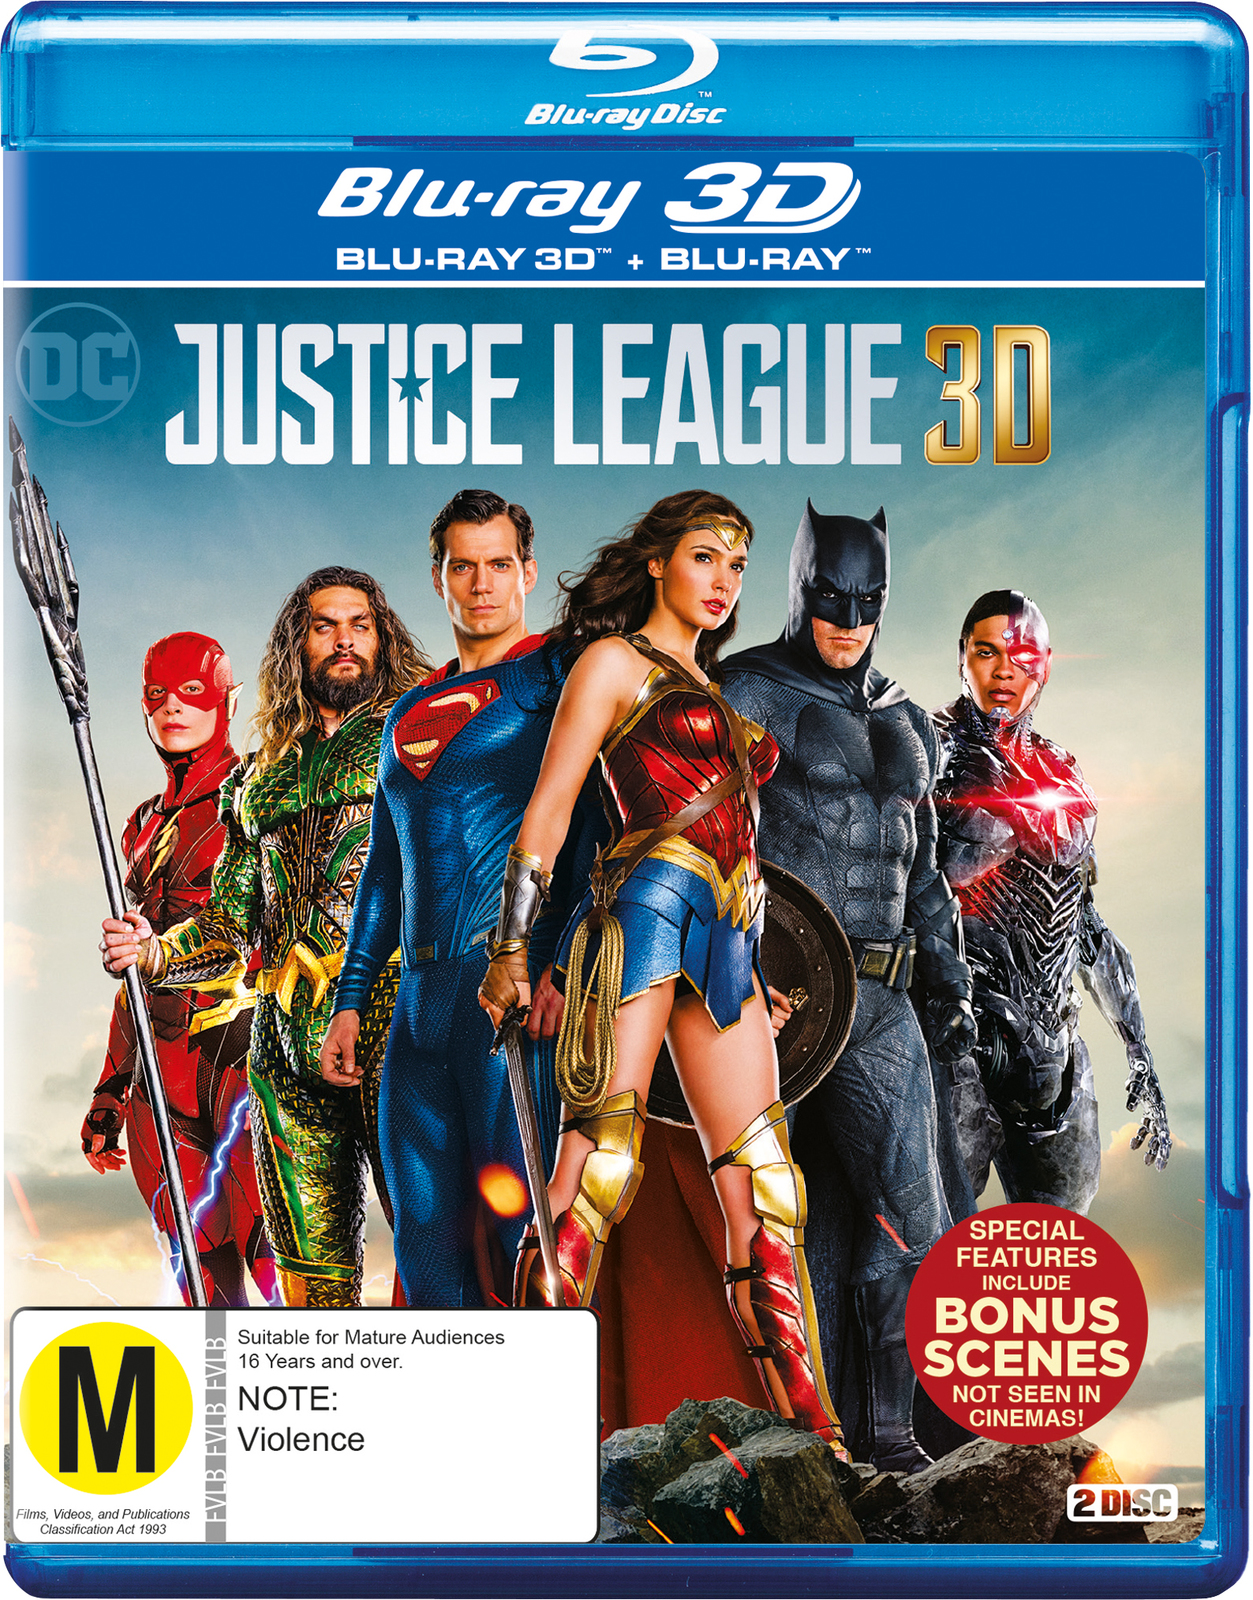 Justice League on 3D Blu-ray image